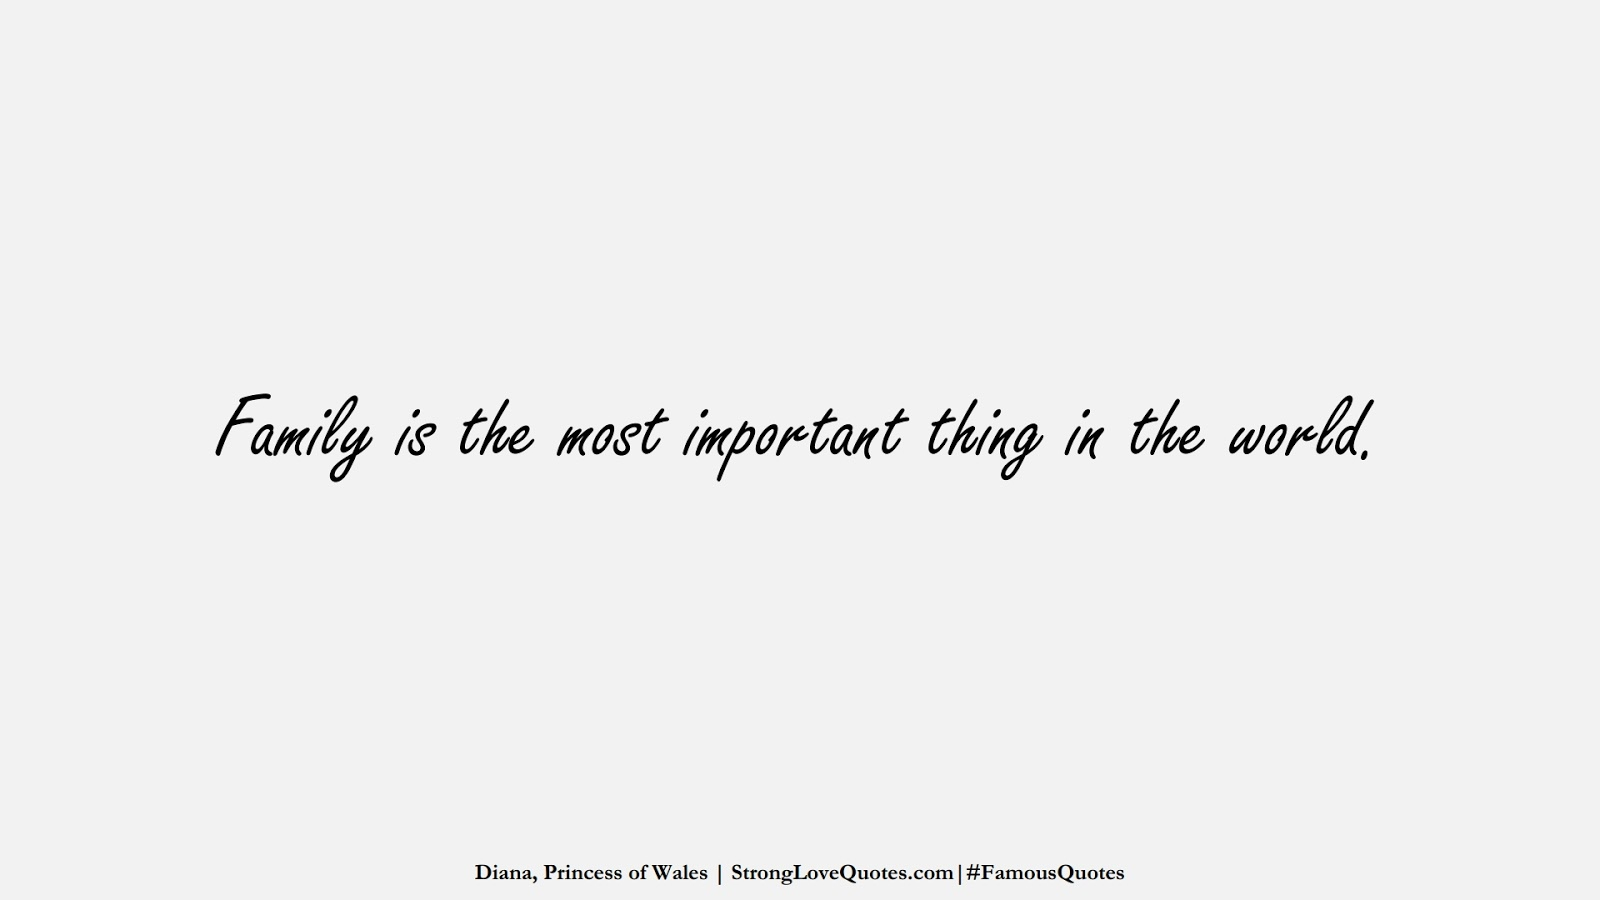 Family is the most important thing in the world. (Diana, Princess of Wales);  #FamousQuotes